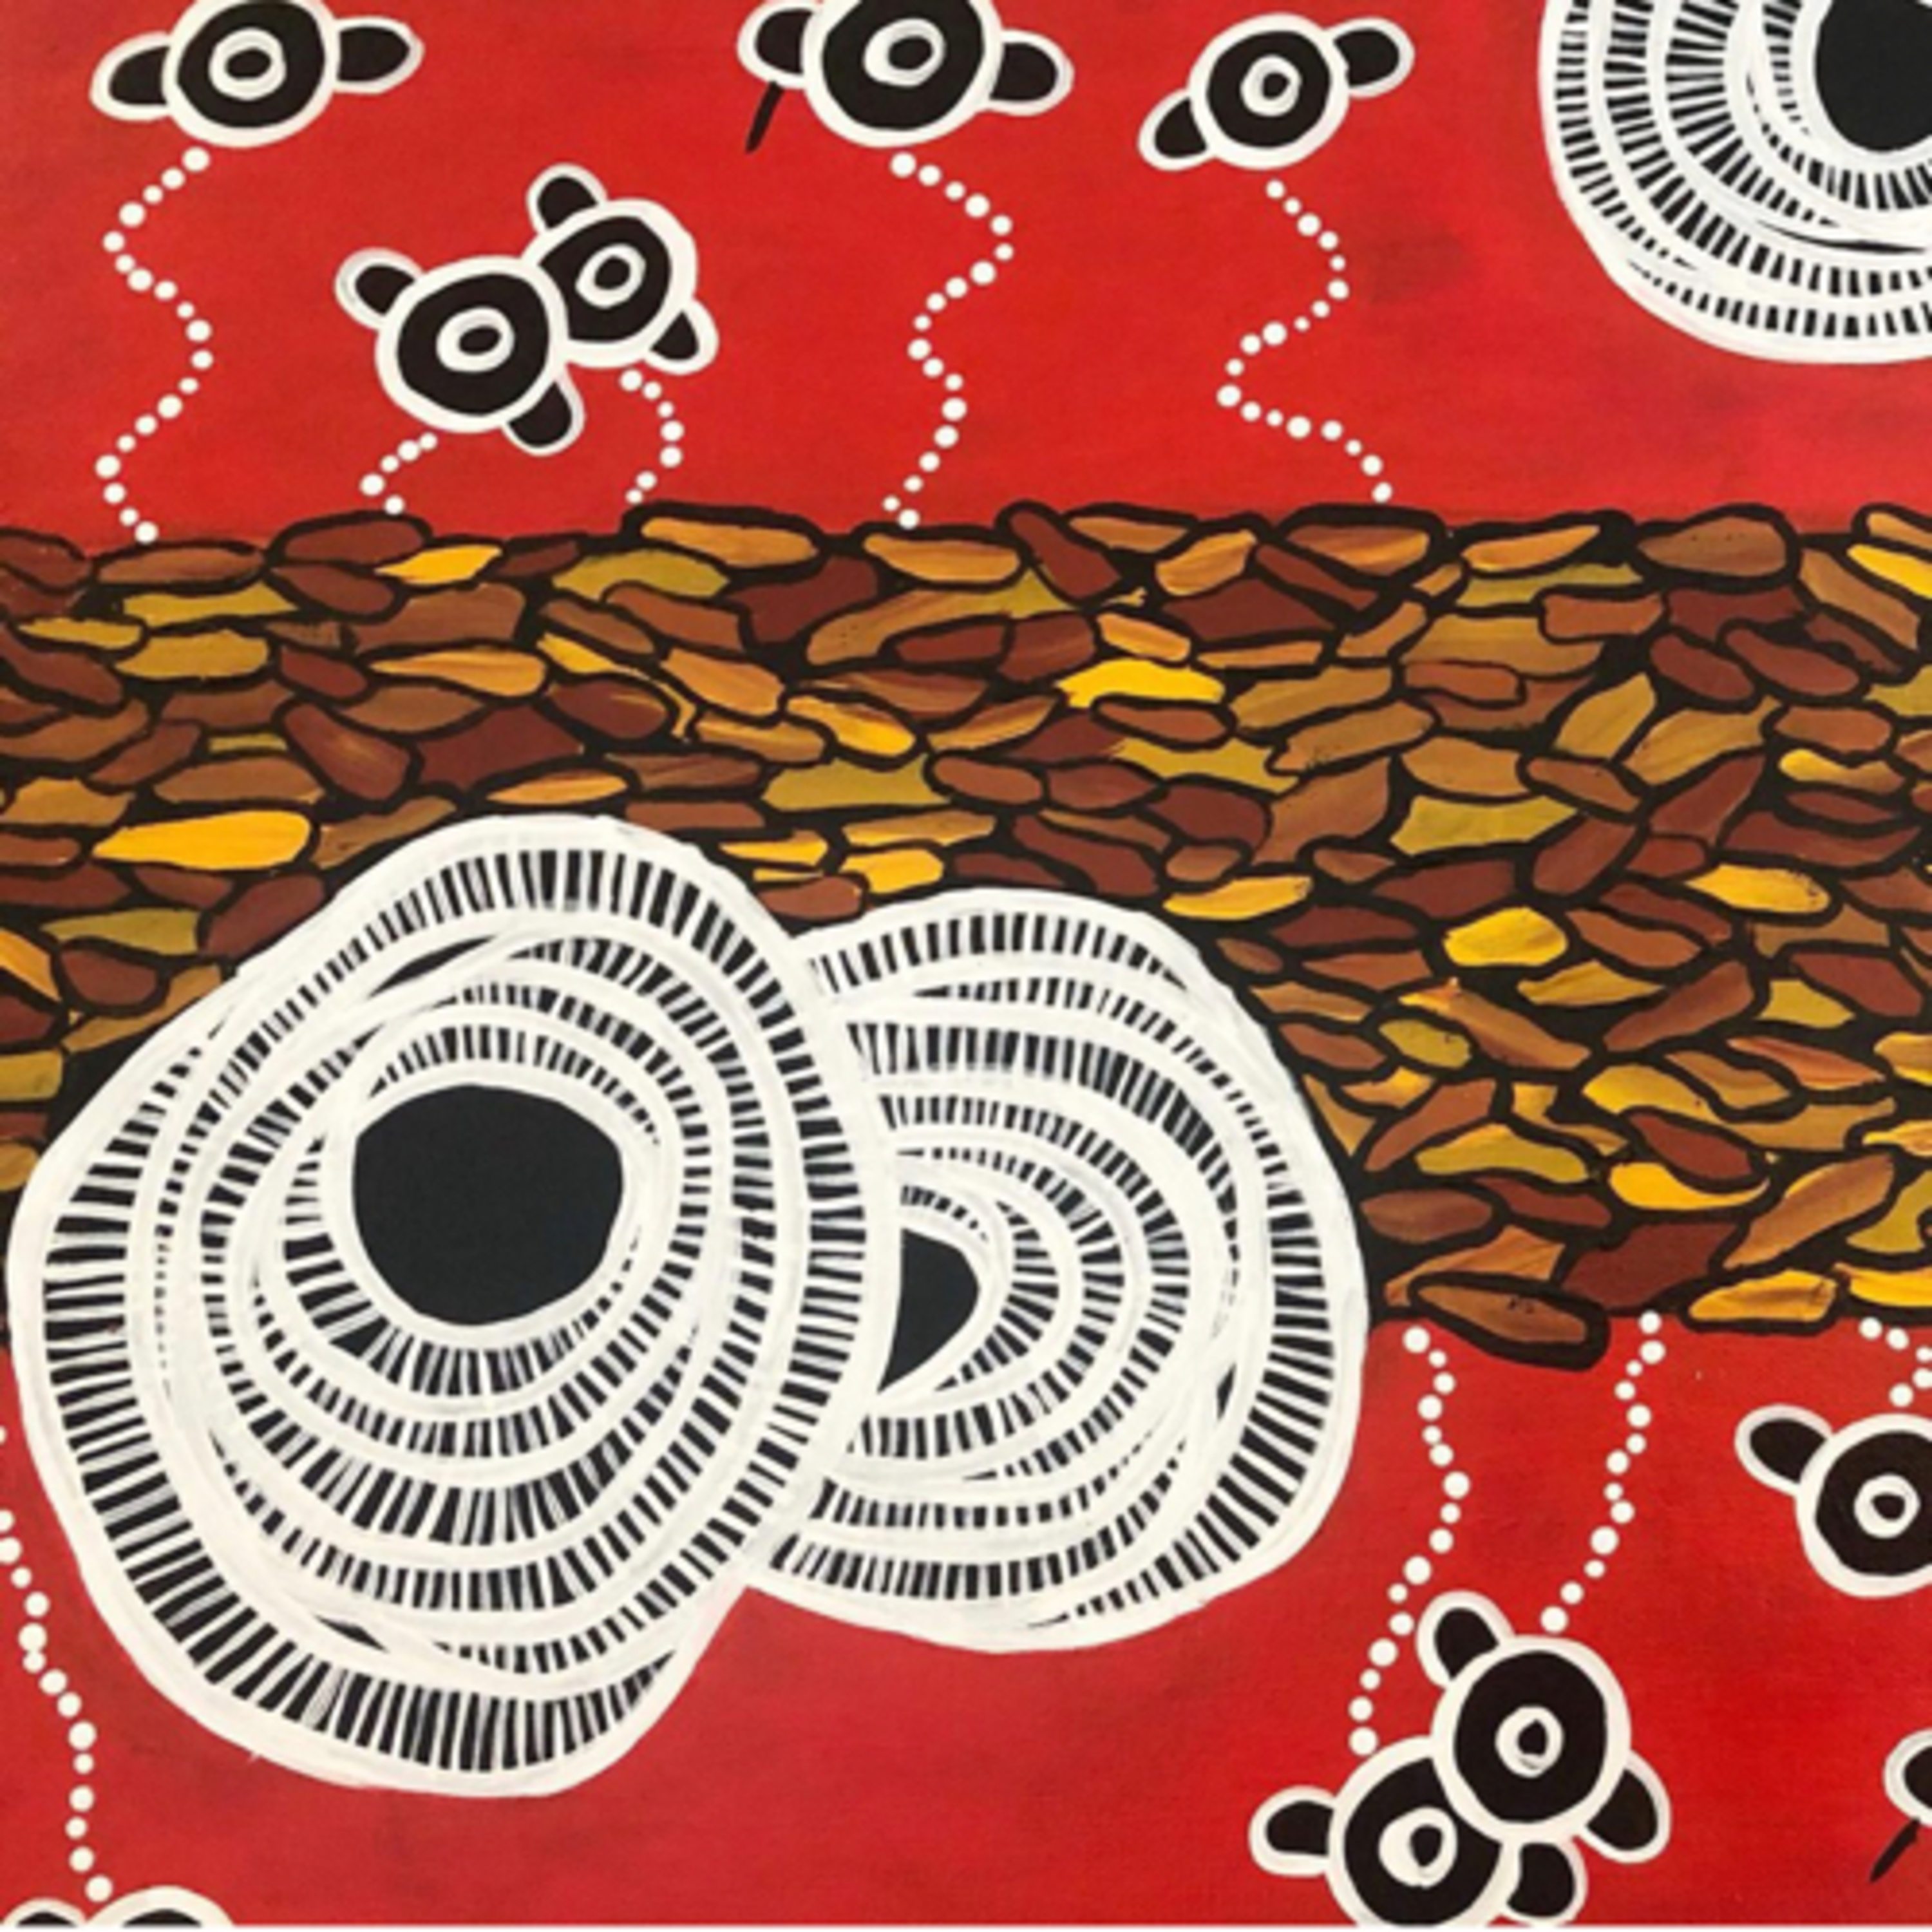 EP 84- A week in the life of Naidoc.